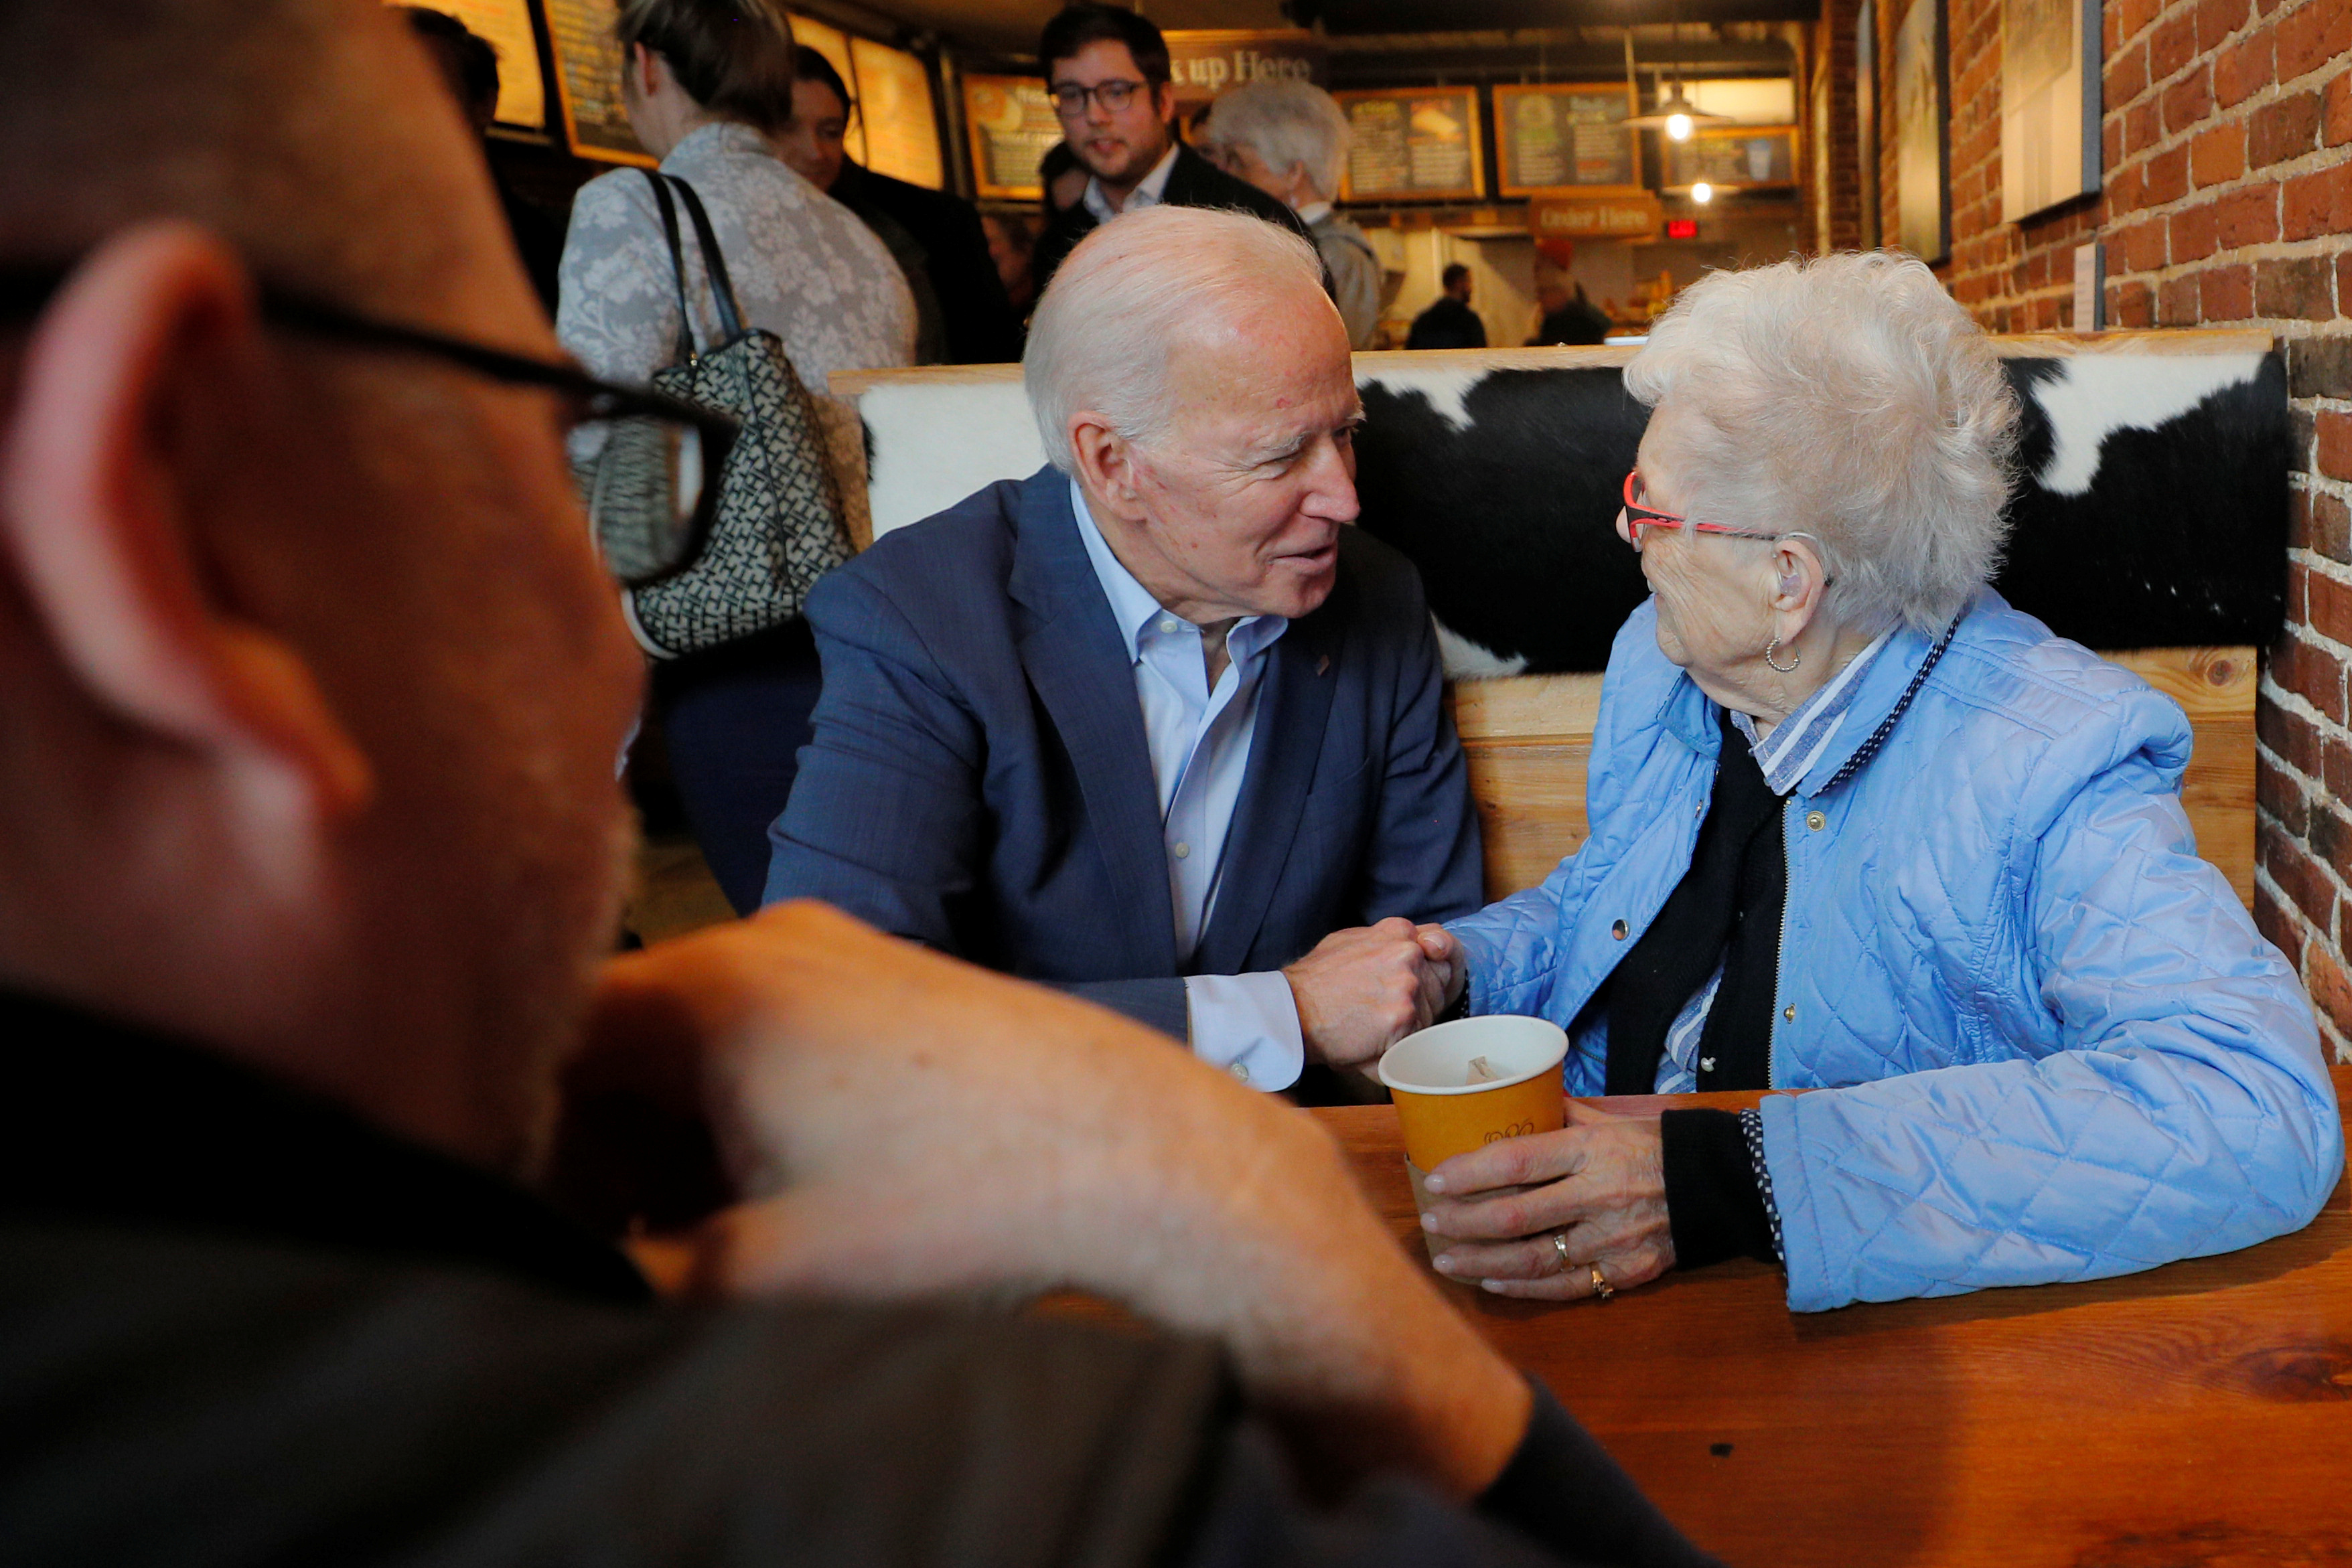 Democratic 2020 U.S. presidential candidate Biden talks to Rita Marion at The Works in Concord